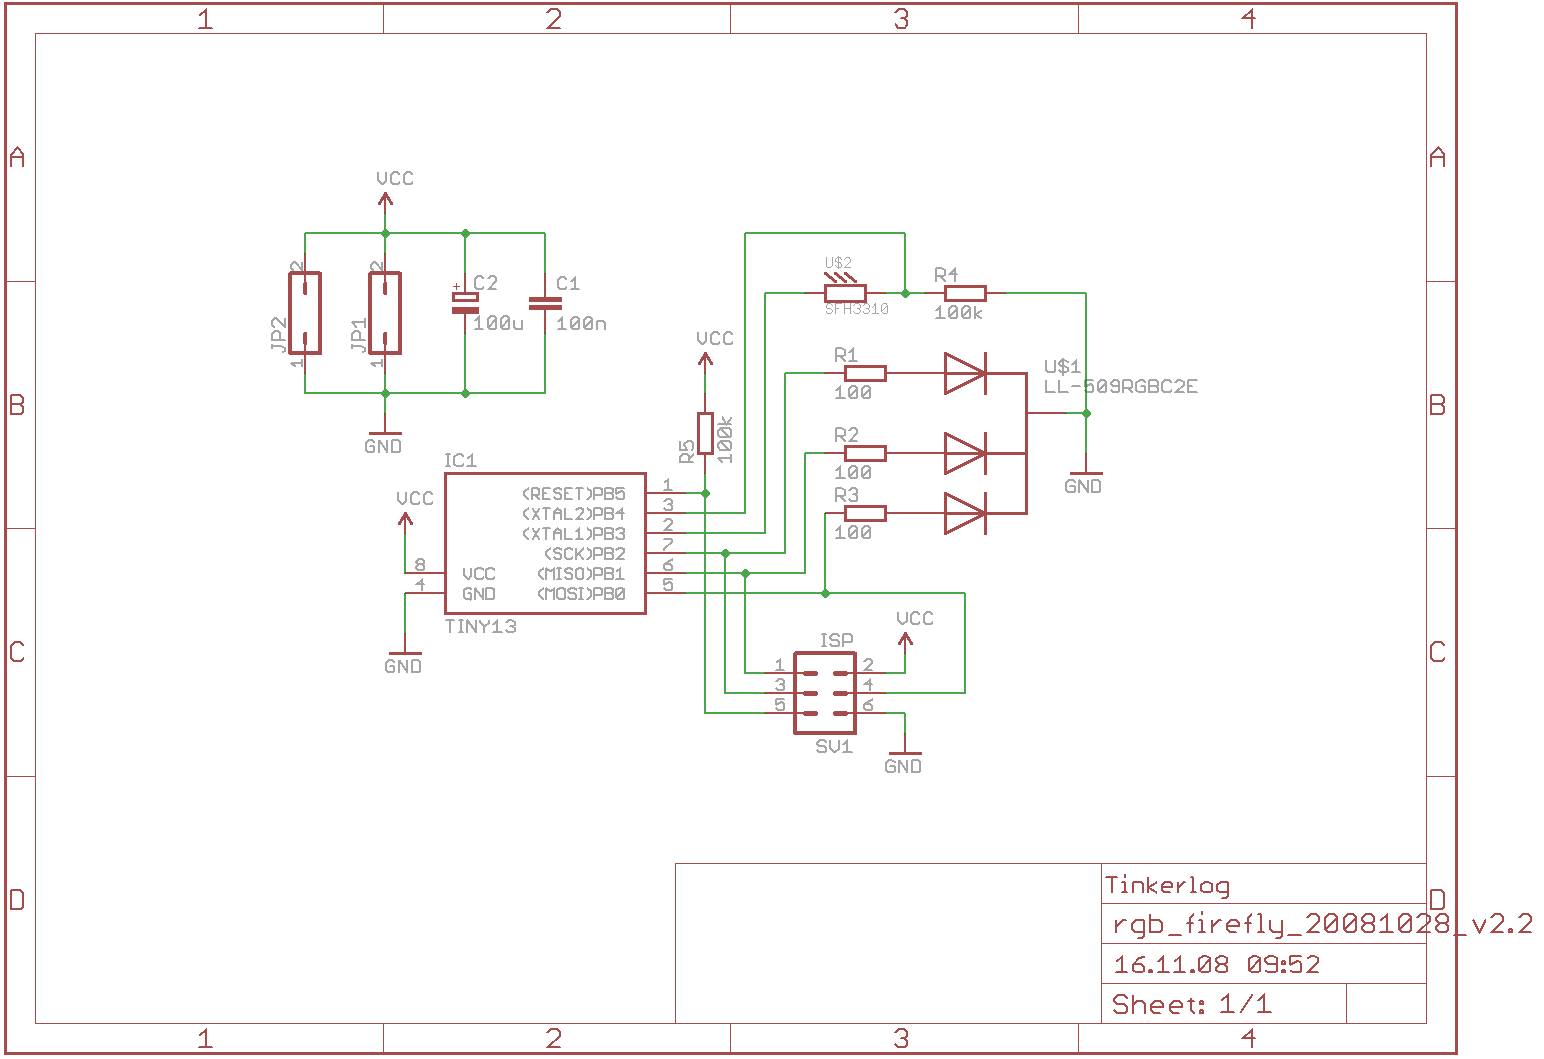 Synchronizing Firefly How To Tinkerlog Rgb Led Fashion Lighting Controller Circuit Schematic Circuits A Phototransistor